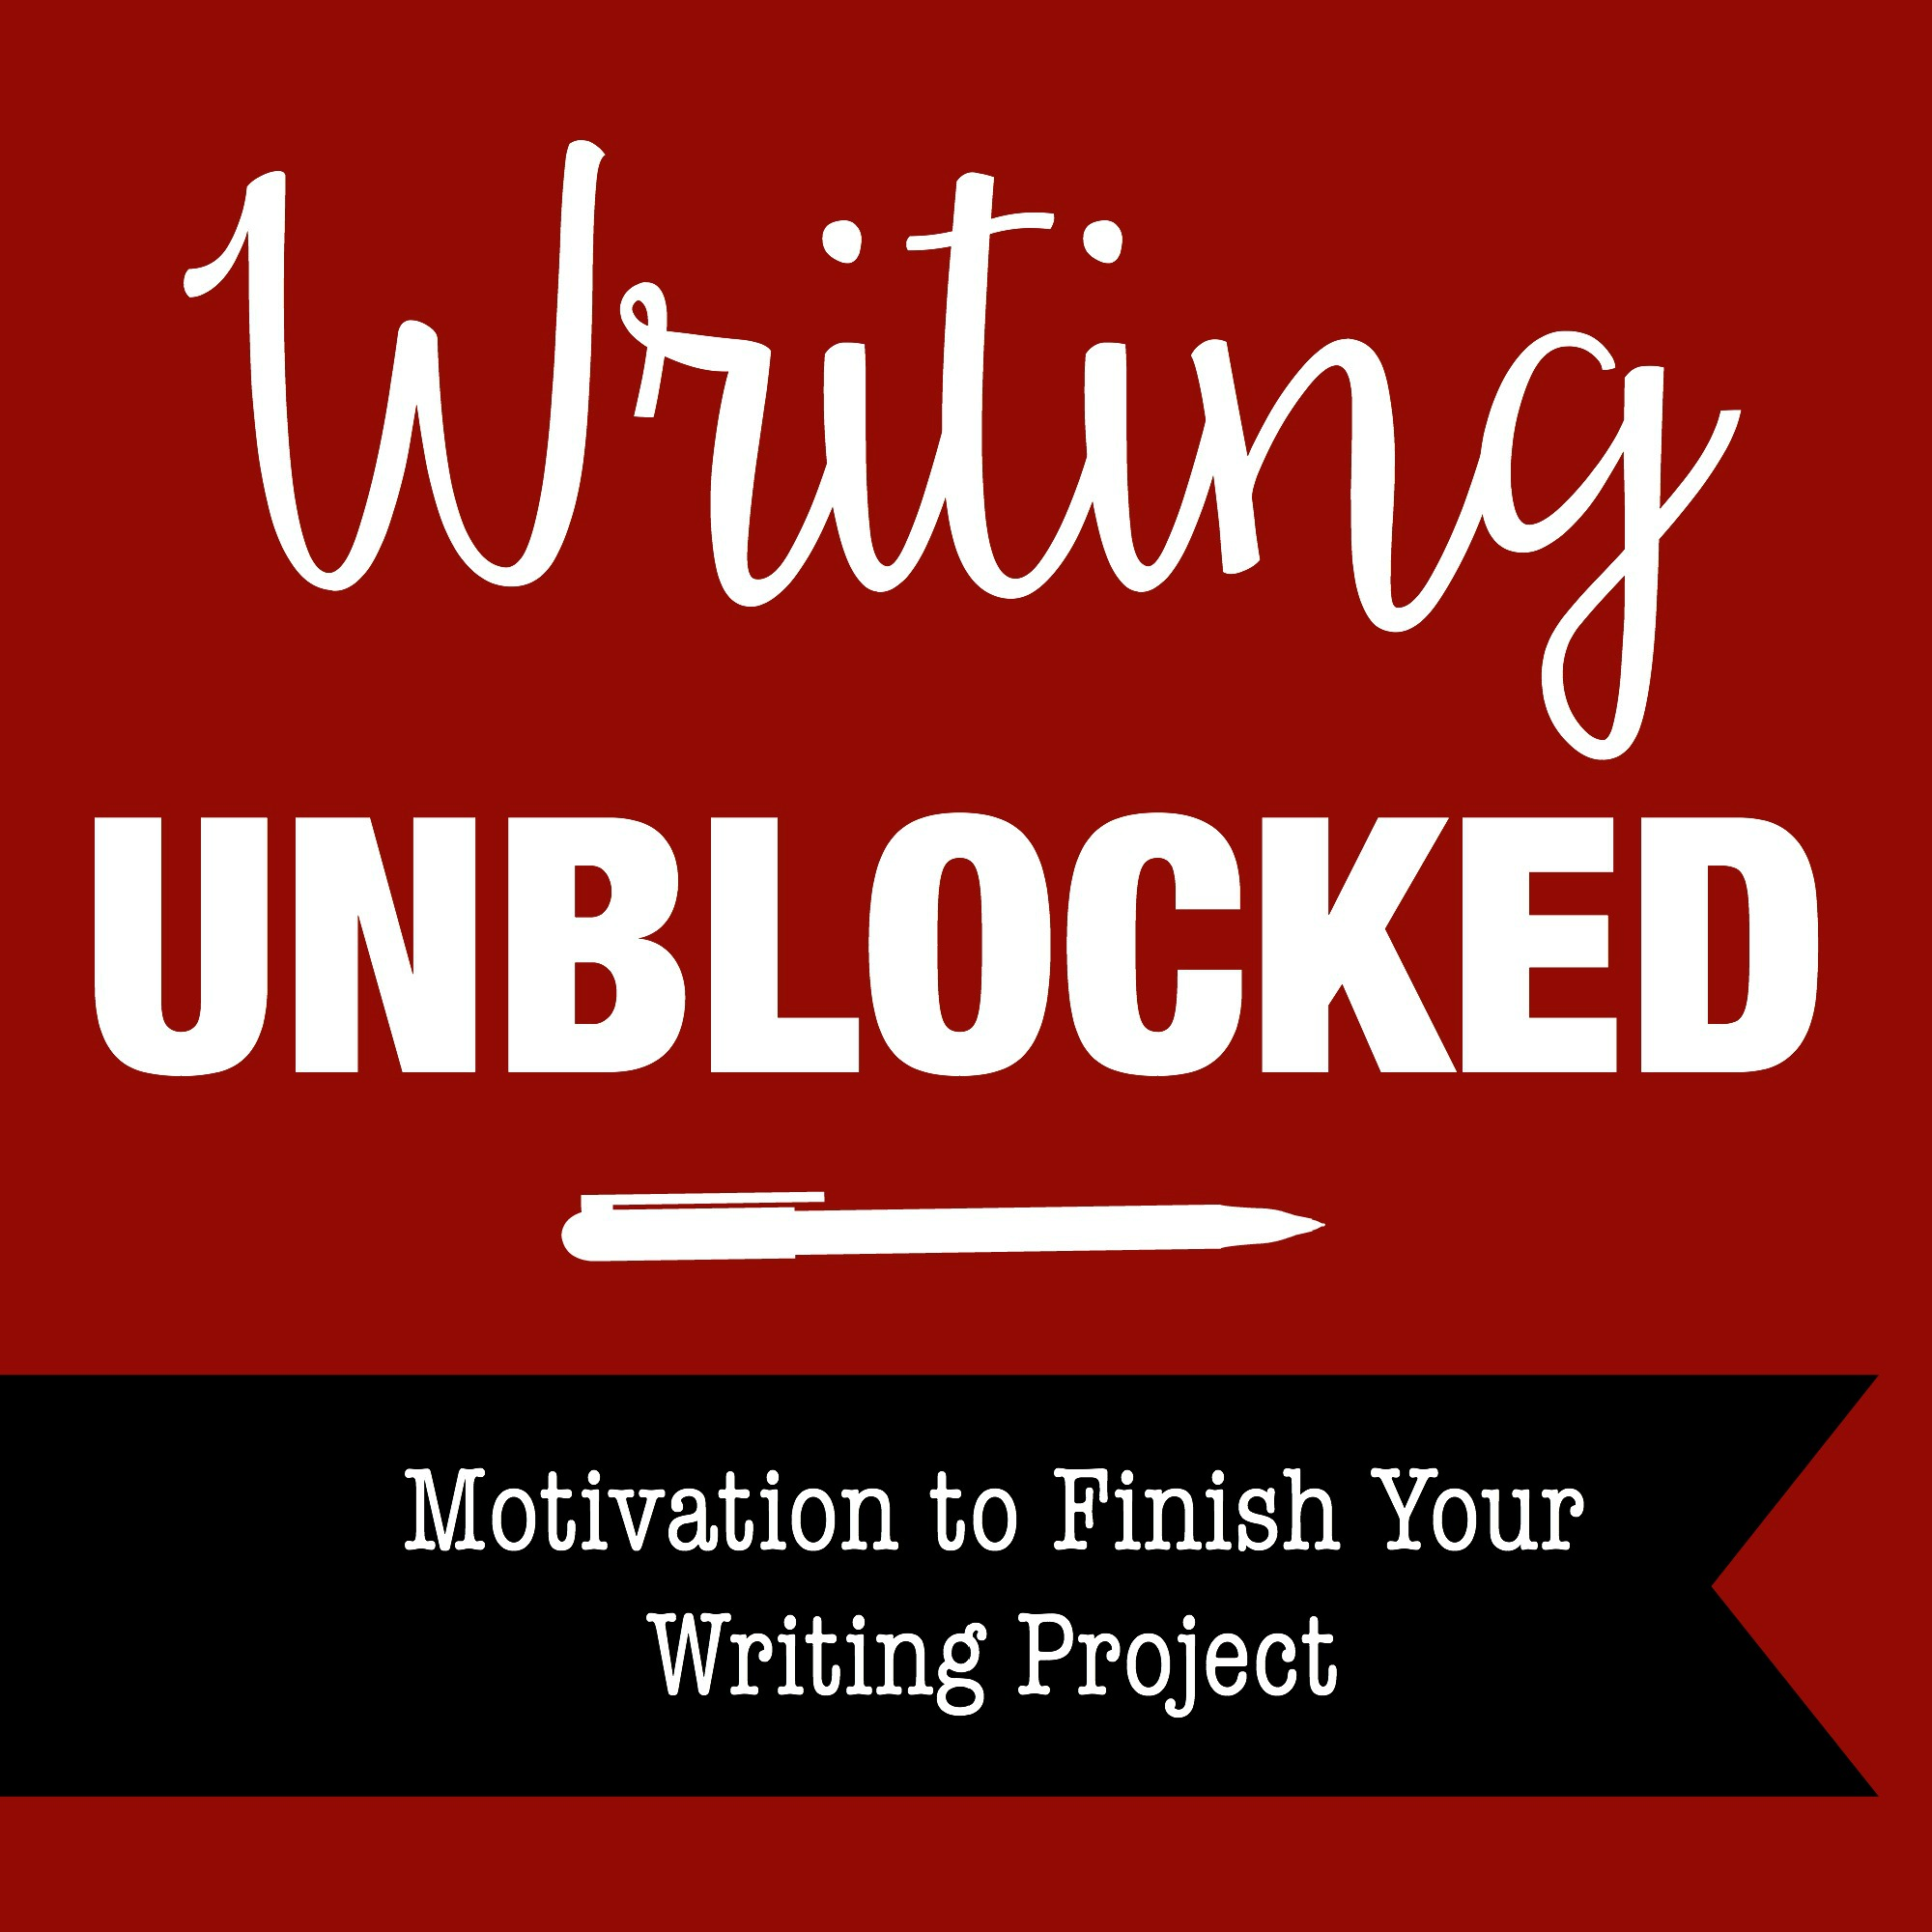 Essay writer unblocked game